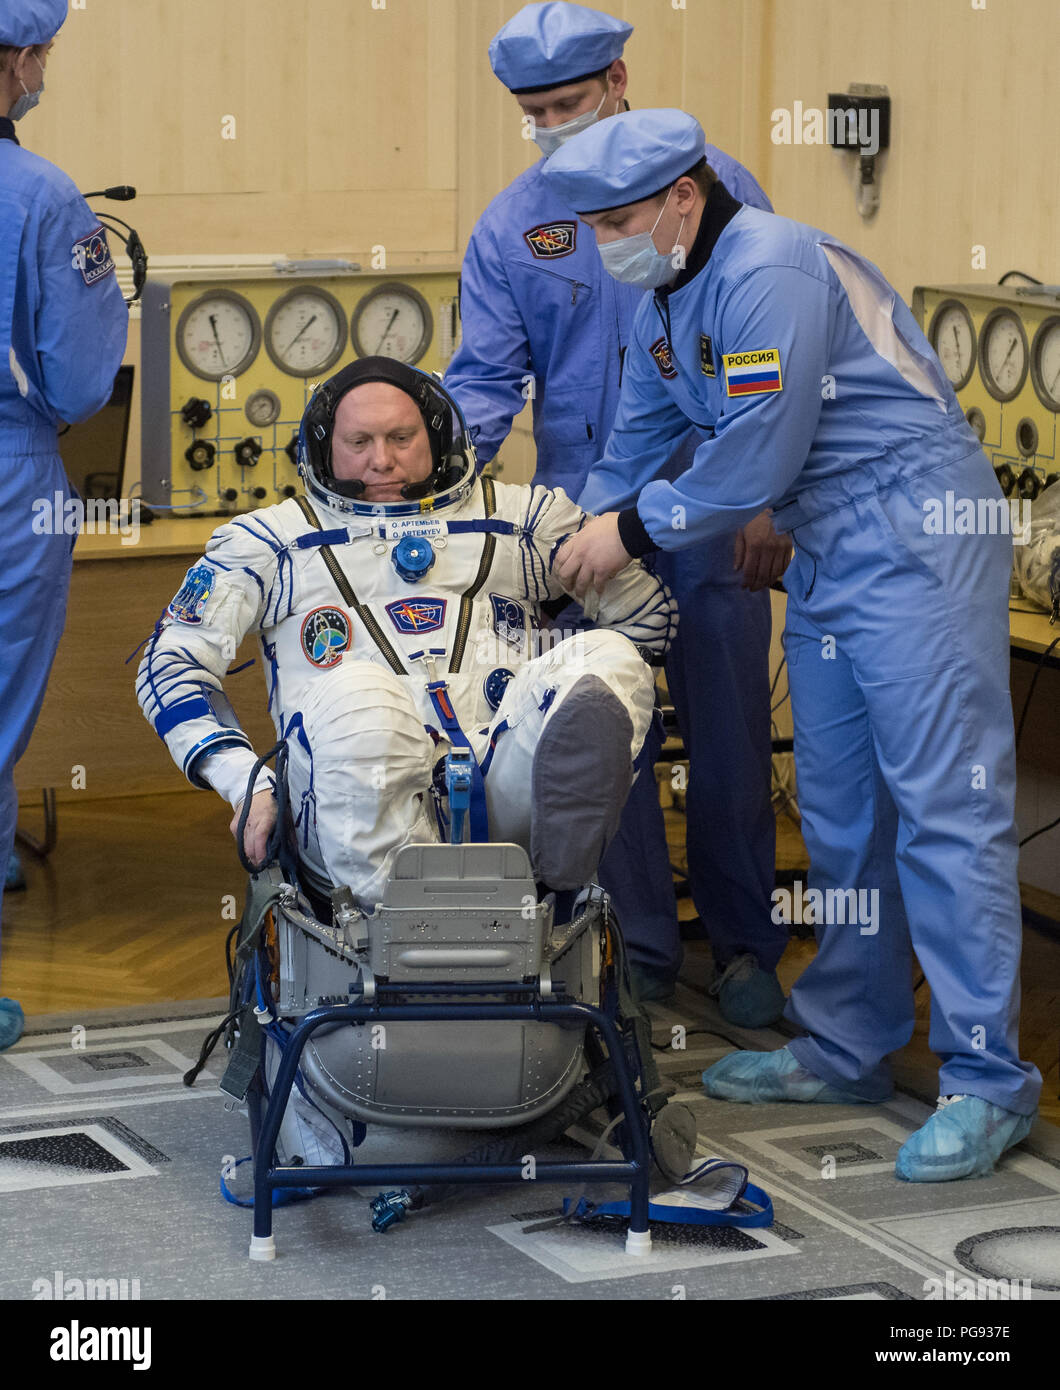 Expedition 55 Soyuz Commander Oleg Artemyev of Roscosmos prepares to have his Russian Sokol suit pressure checked in preparation for launch aboard the Soyuz MS-08 spacecraft, Wednesday, March 21, 2018 at the Baikonur Cosmodrome in Kazakhstan. Artemyev and flight engineers Ricky Arnold and Drew Feustel of NASA launched aboard the Soyuz MS-08 spacecraft at 1:44 p.m. Eastern time (11:44 p.m. Baikonur time) on March 21 to begin their journey to the International Space Station. - Stock Image